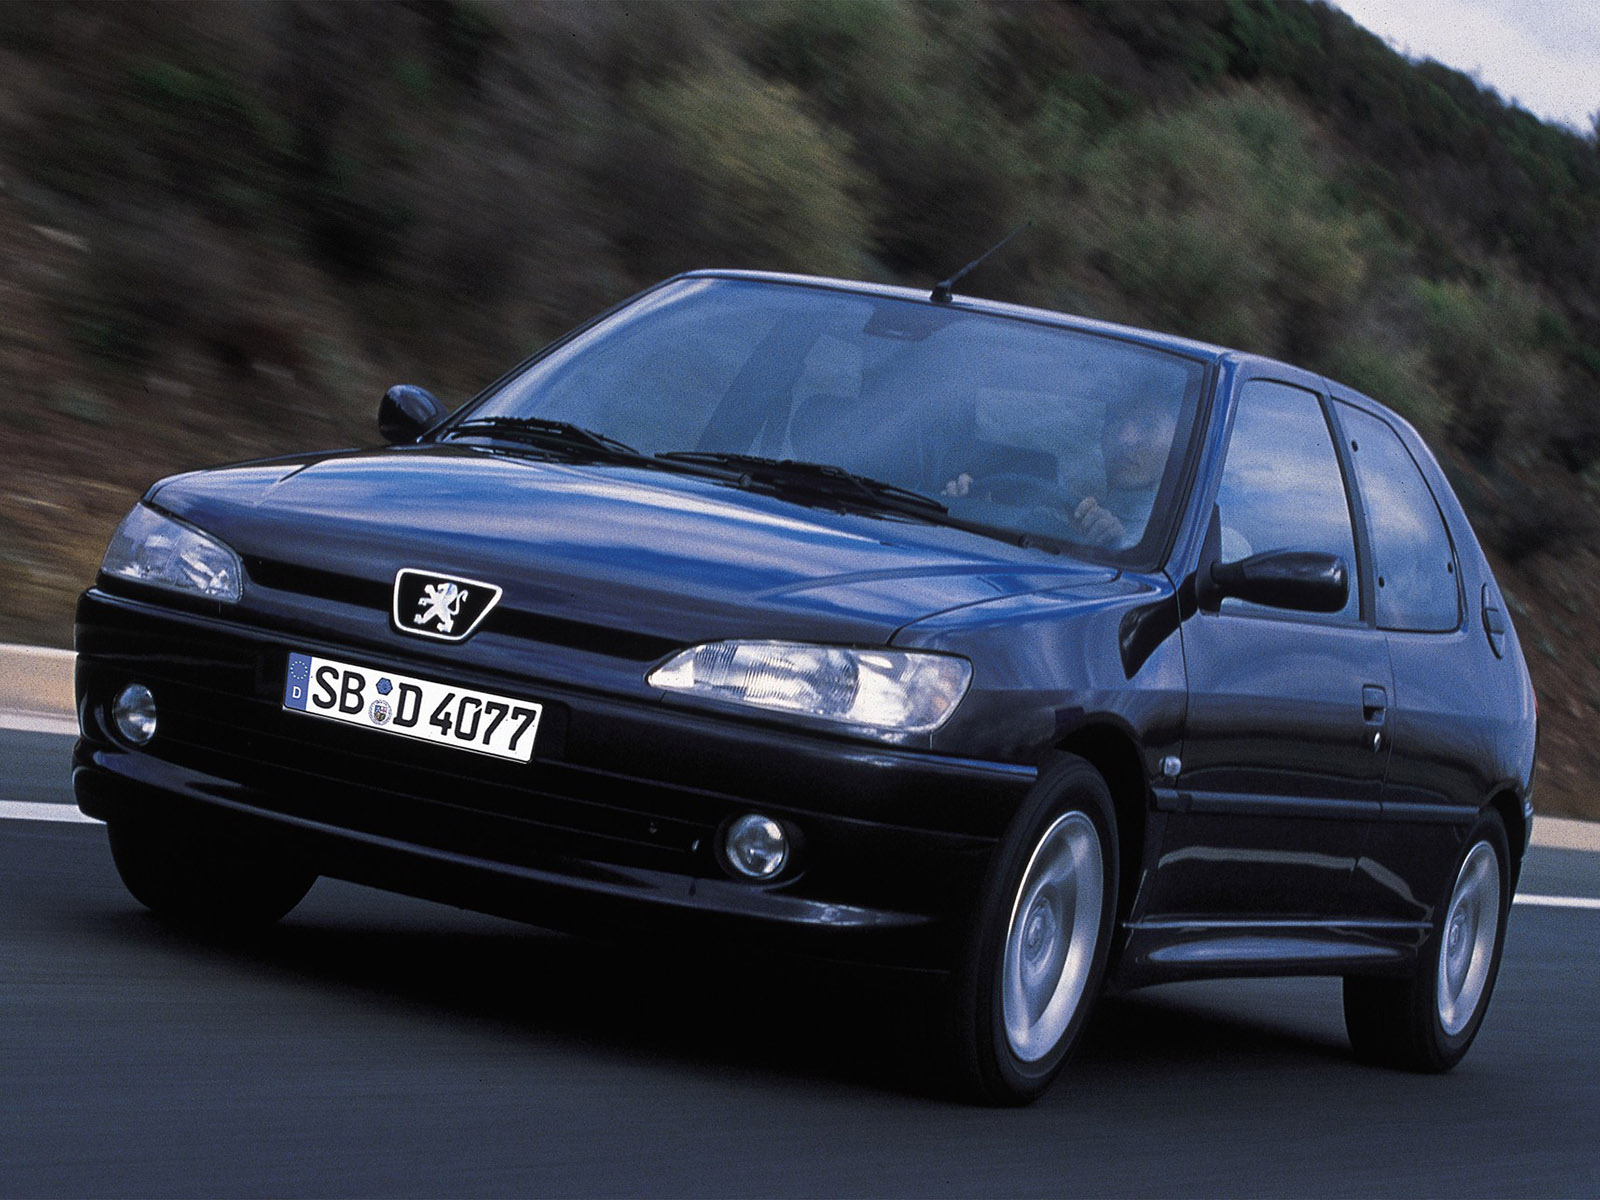 1997 Peugeot 306 Photos, Informations, Articles